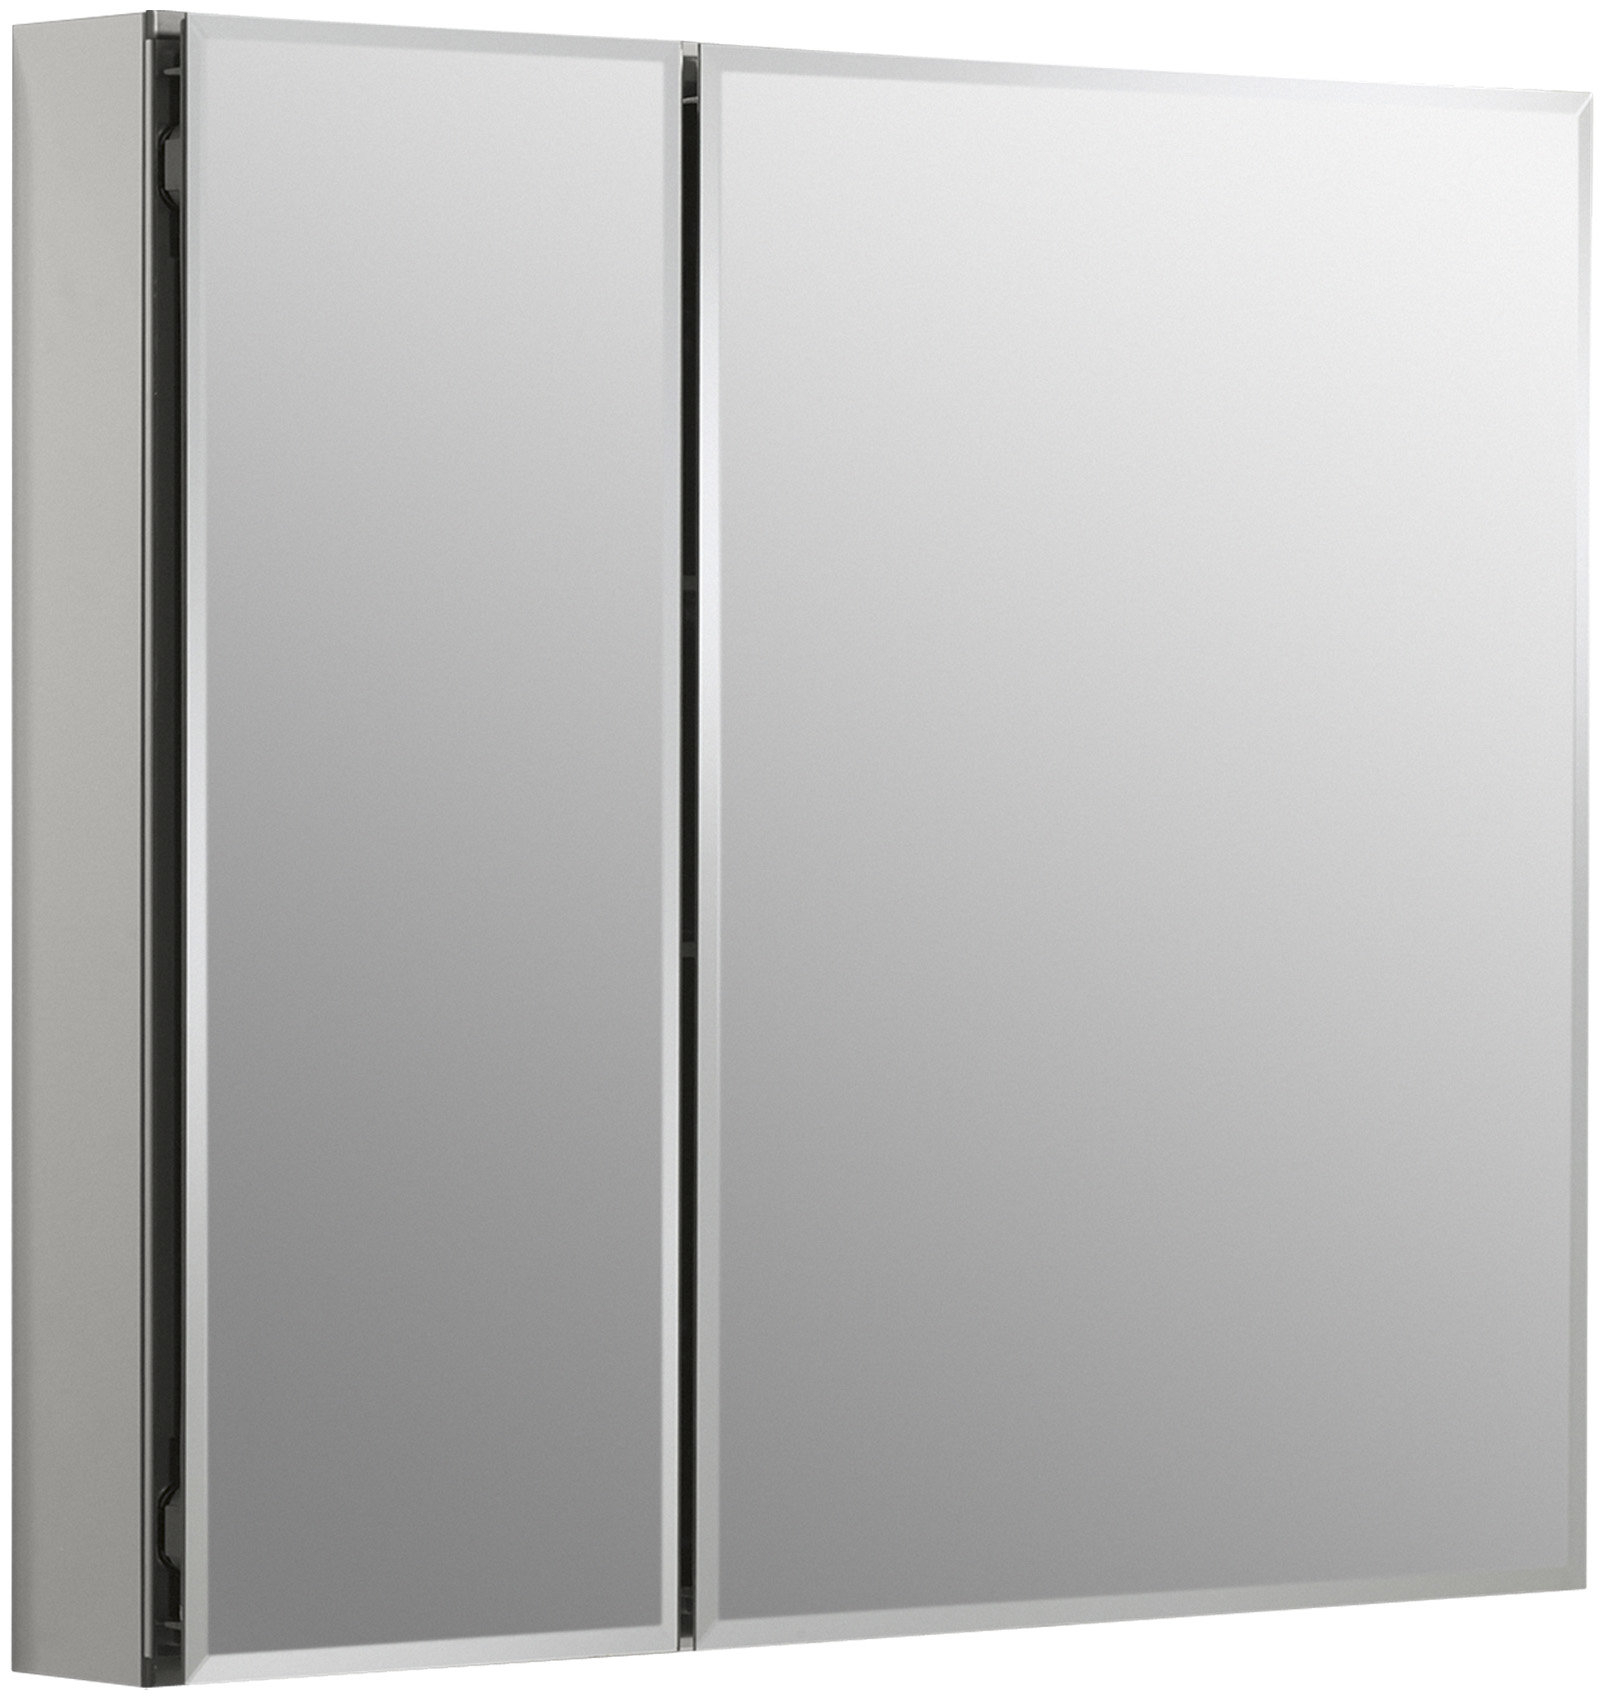 "K Cb Clc3026Fs Kohler 30"" X 26"" Aluminum Two Door Medicine Pertaining To Mirrored Double Door Buffets (Photo 29 of 30)"